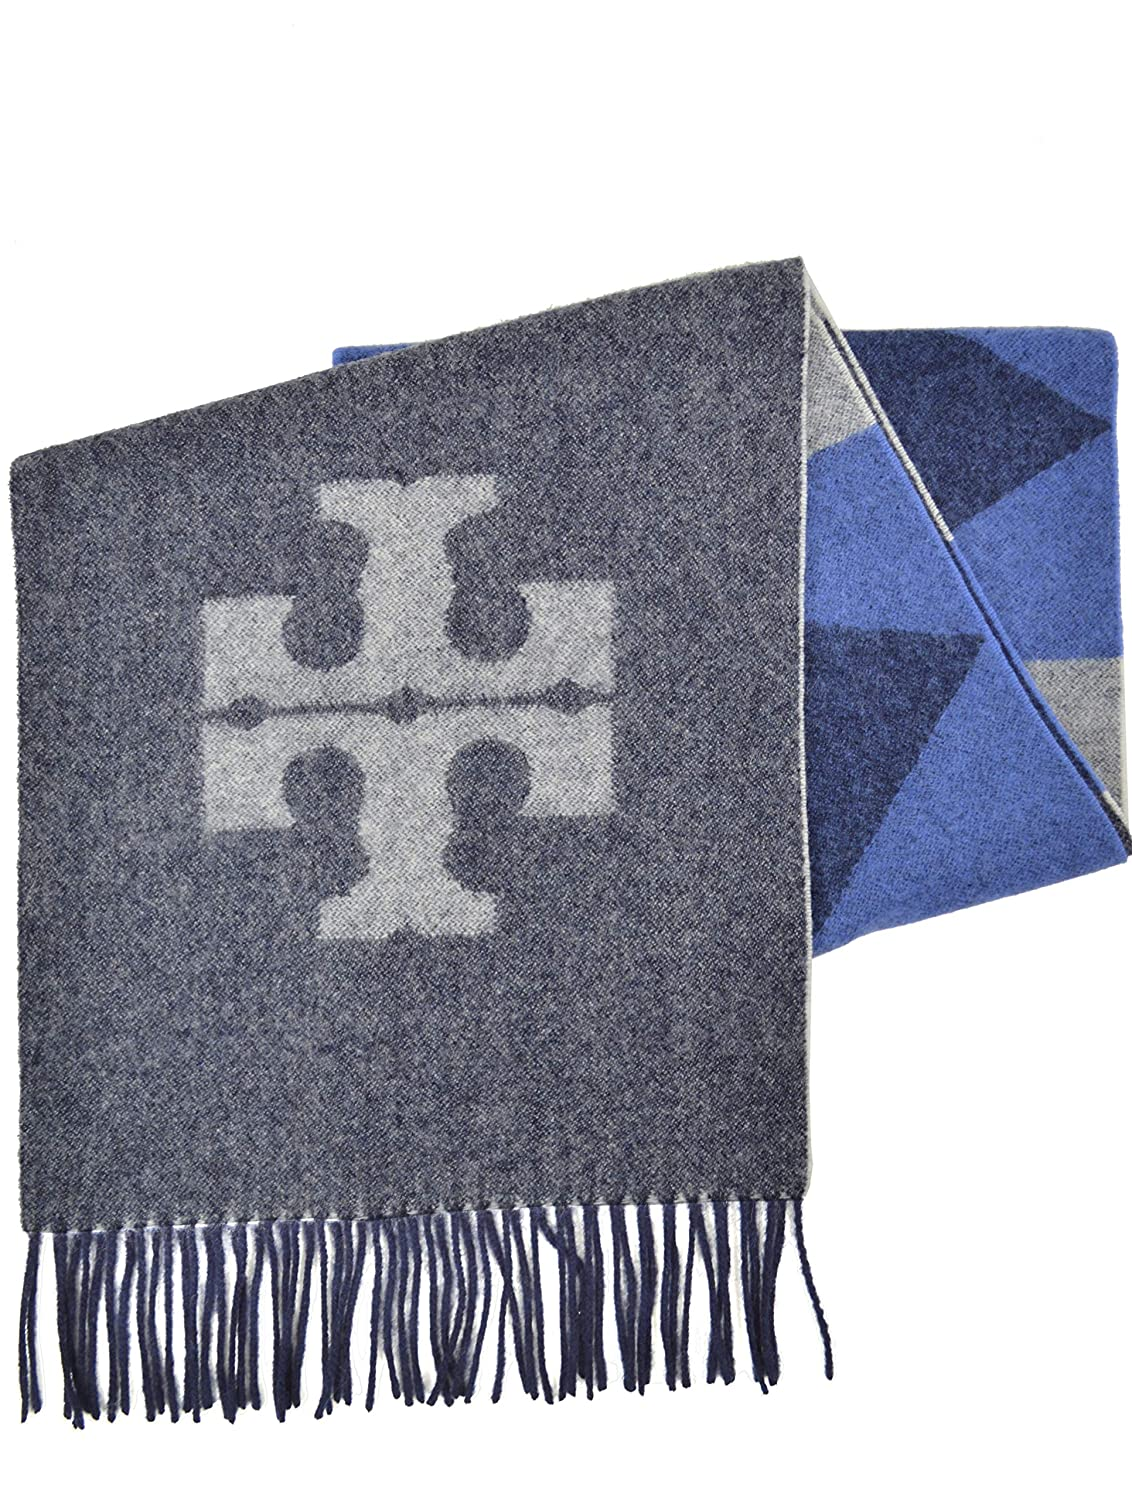 Tory Burch Women's Carnavalet Oblong T Logo Rectangle Scarf Navy bluee